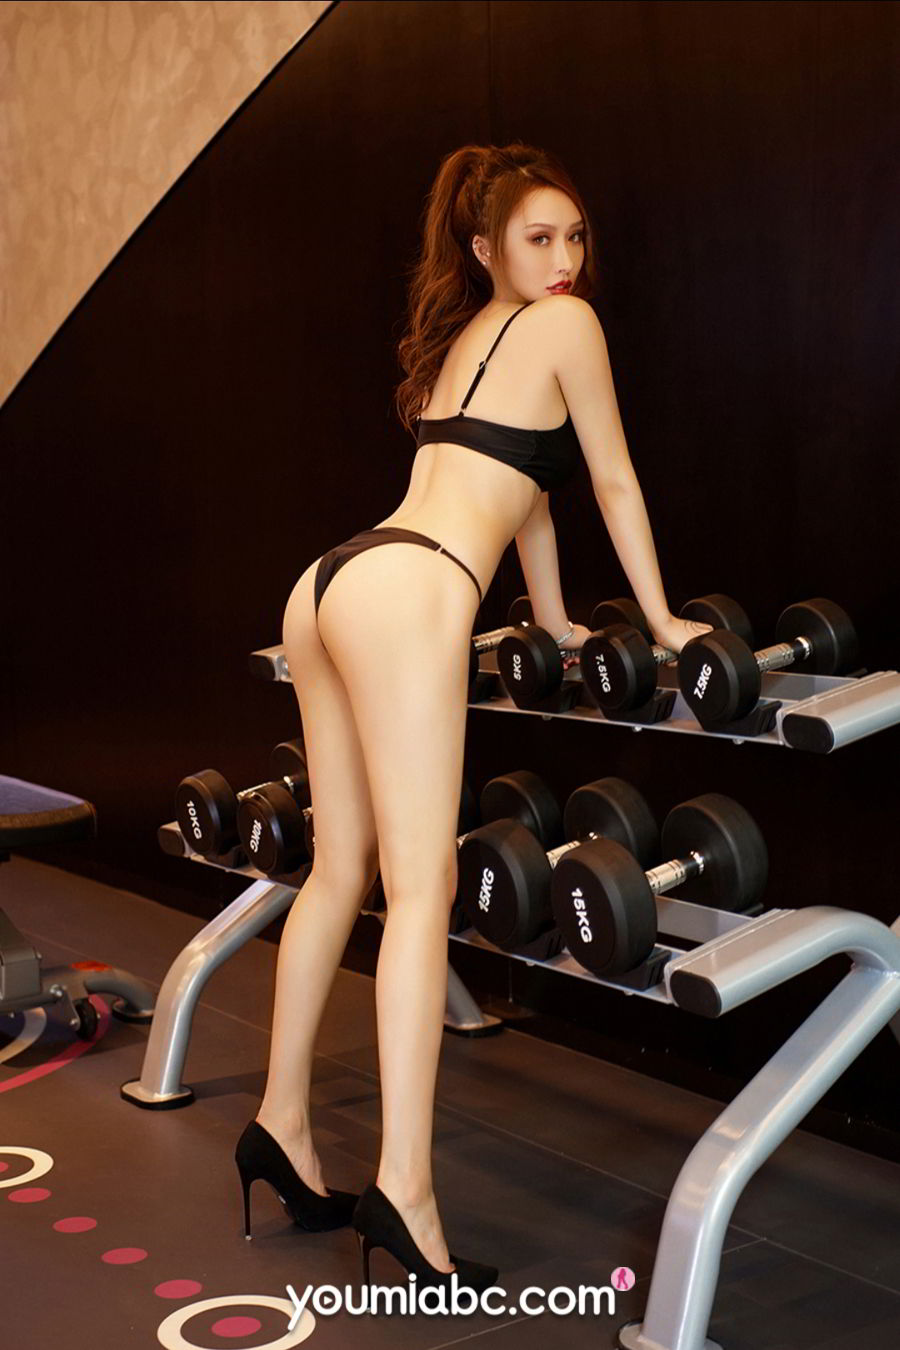 [Youmei] Vol.428 The temptation of the gym